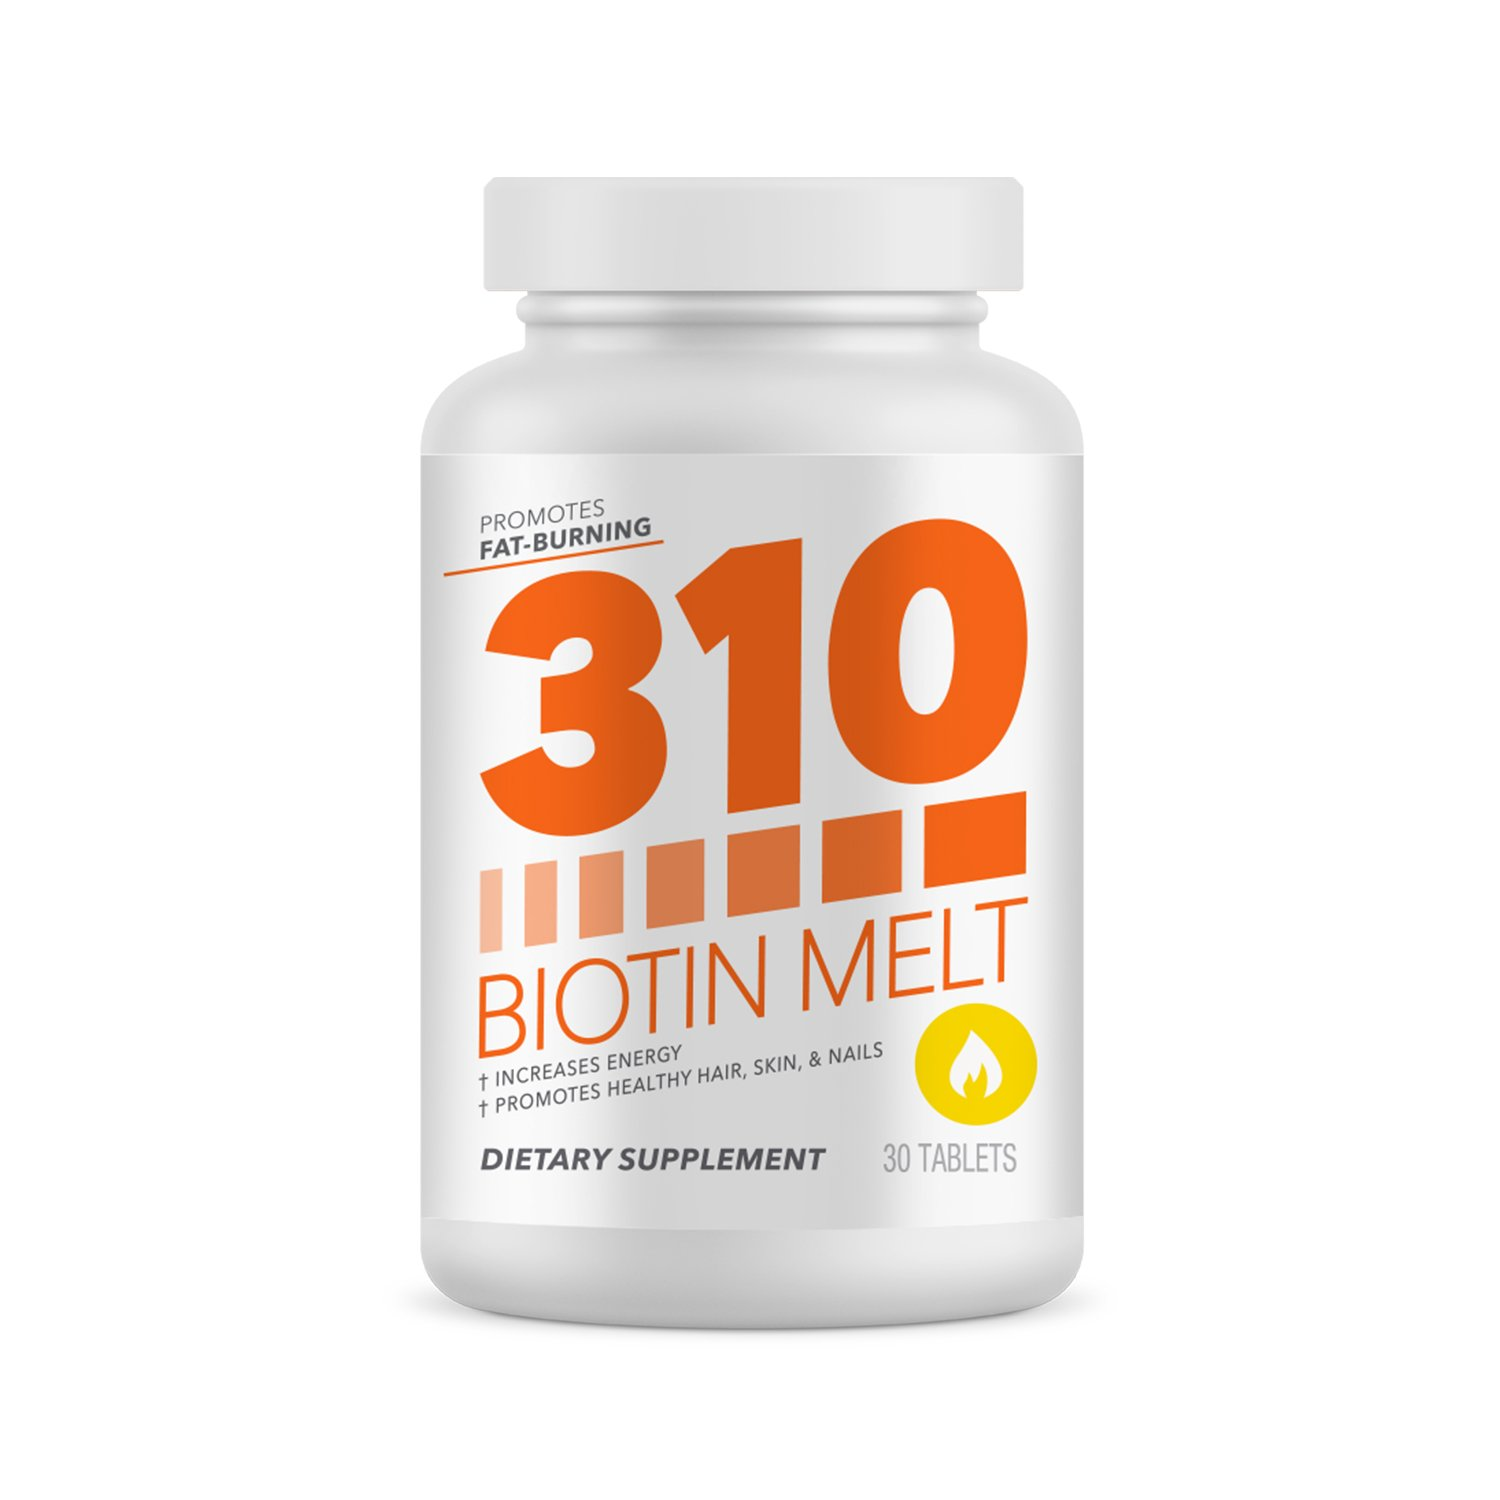 Biotin 10,000 mcg High Potency | 310 Biotin Natural Melting and Dissolving Tablet Helps with Hair Growth, Improved Skin Care, Supports Nail Growth and Improves Energy Levels